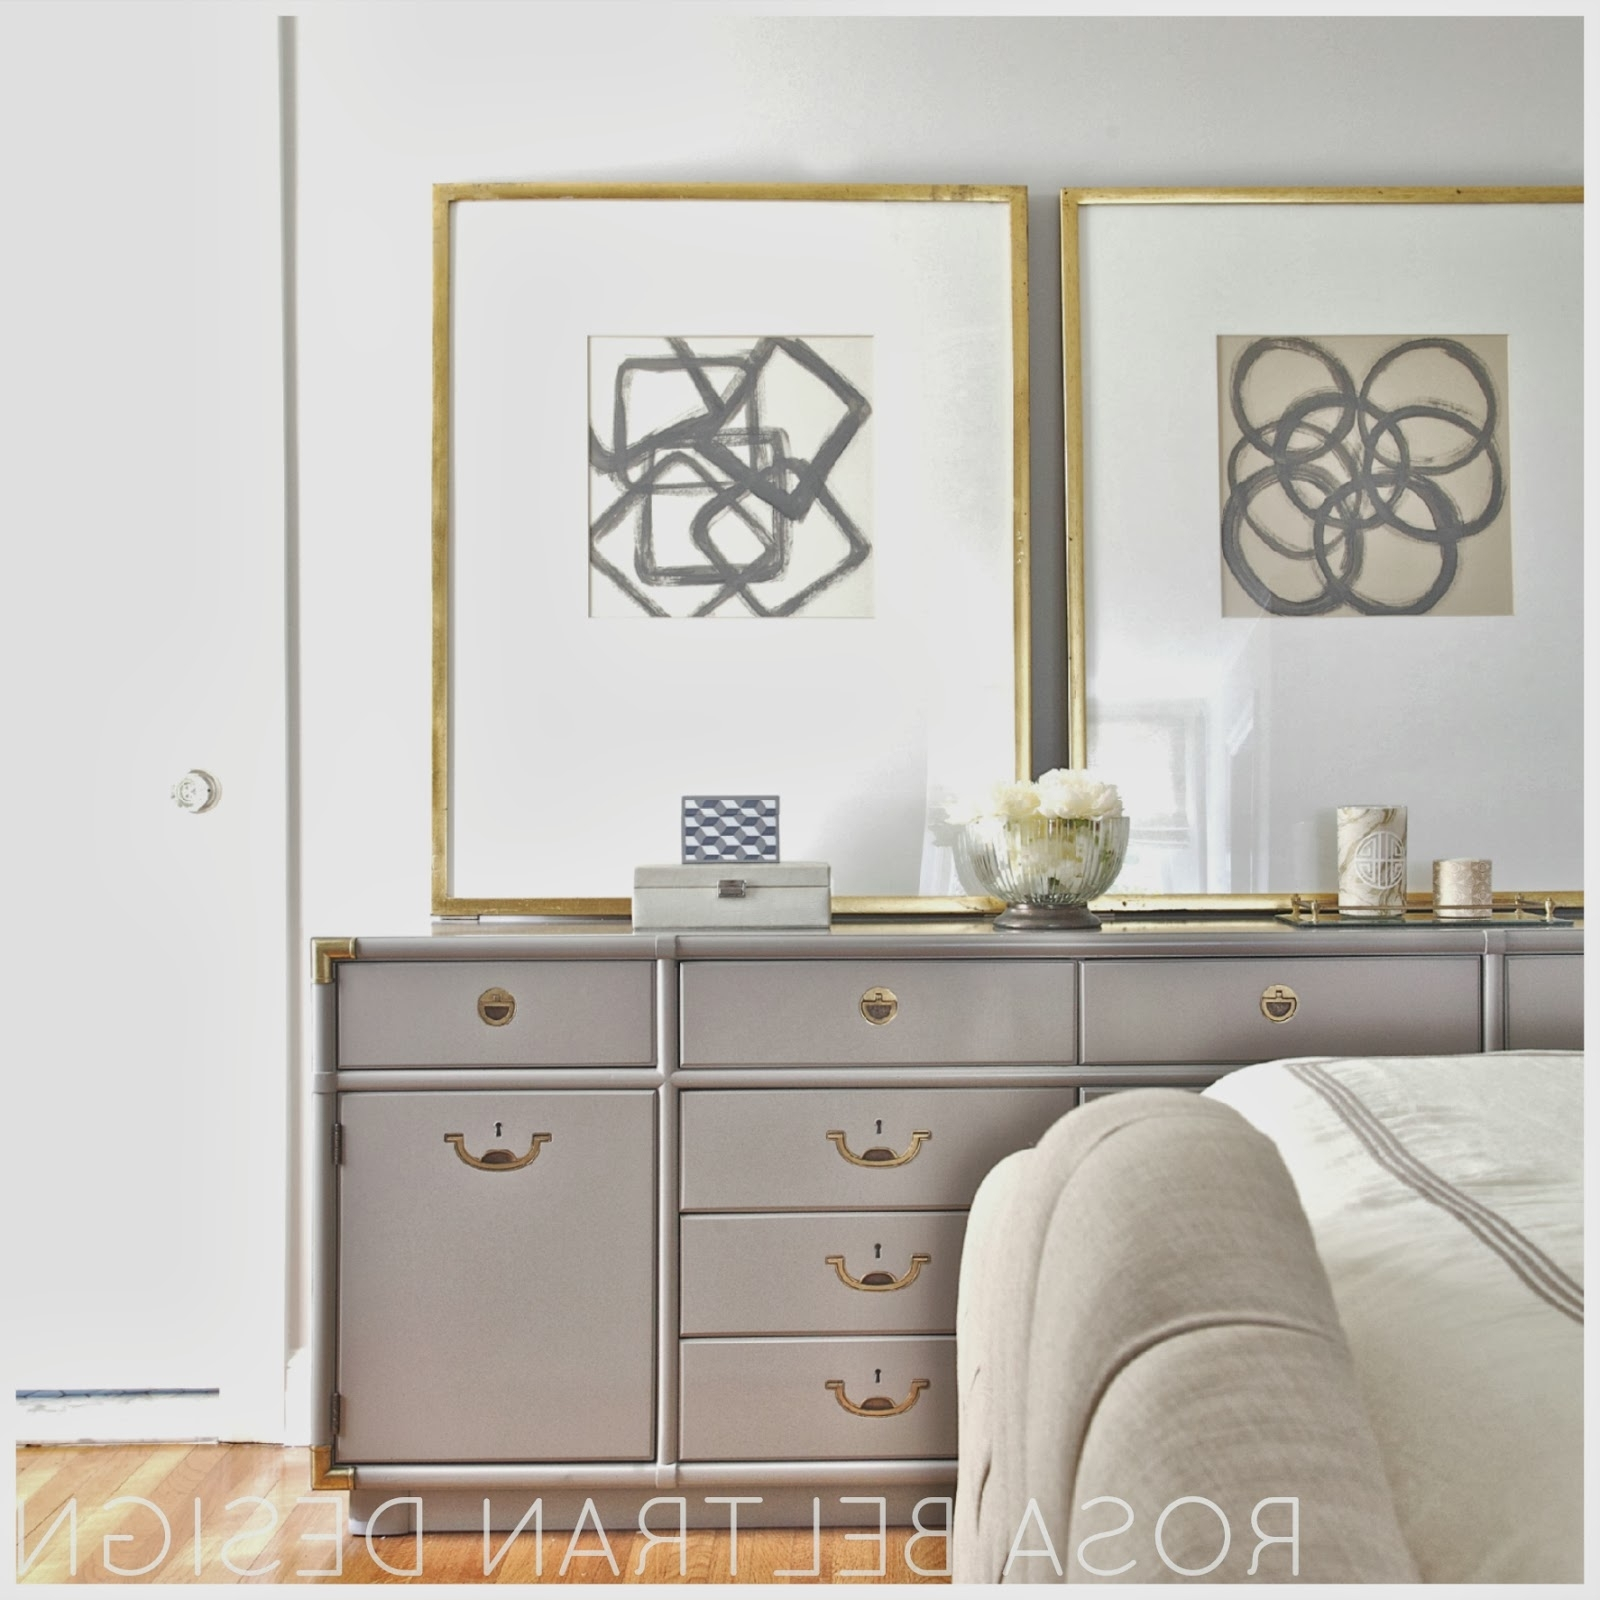 Famous Rosa Beltran Design: Diy Wall Art Series: Modern Abstracts Inside Diy Modern Abstract Wall Art (View 9 of 15)